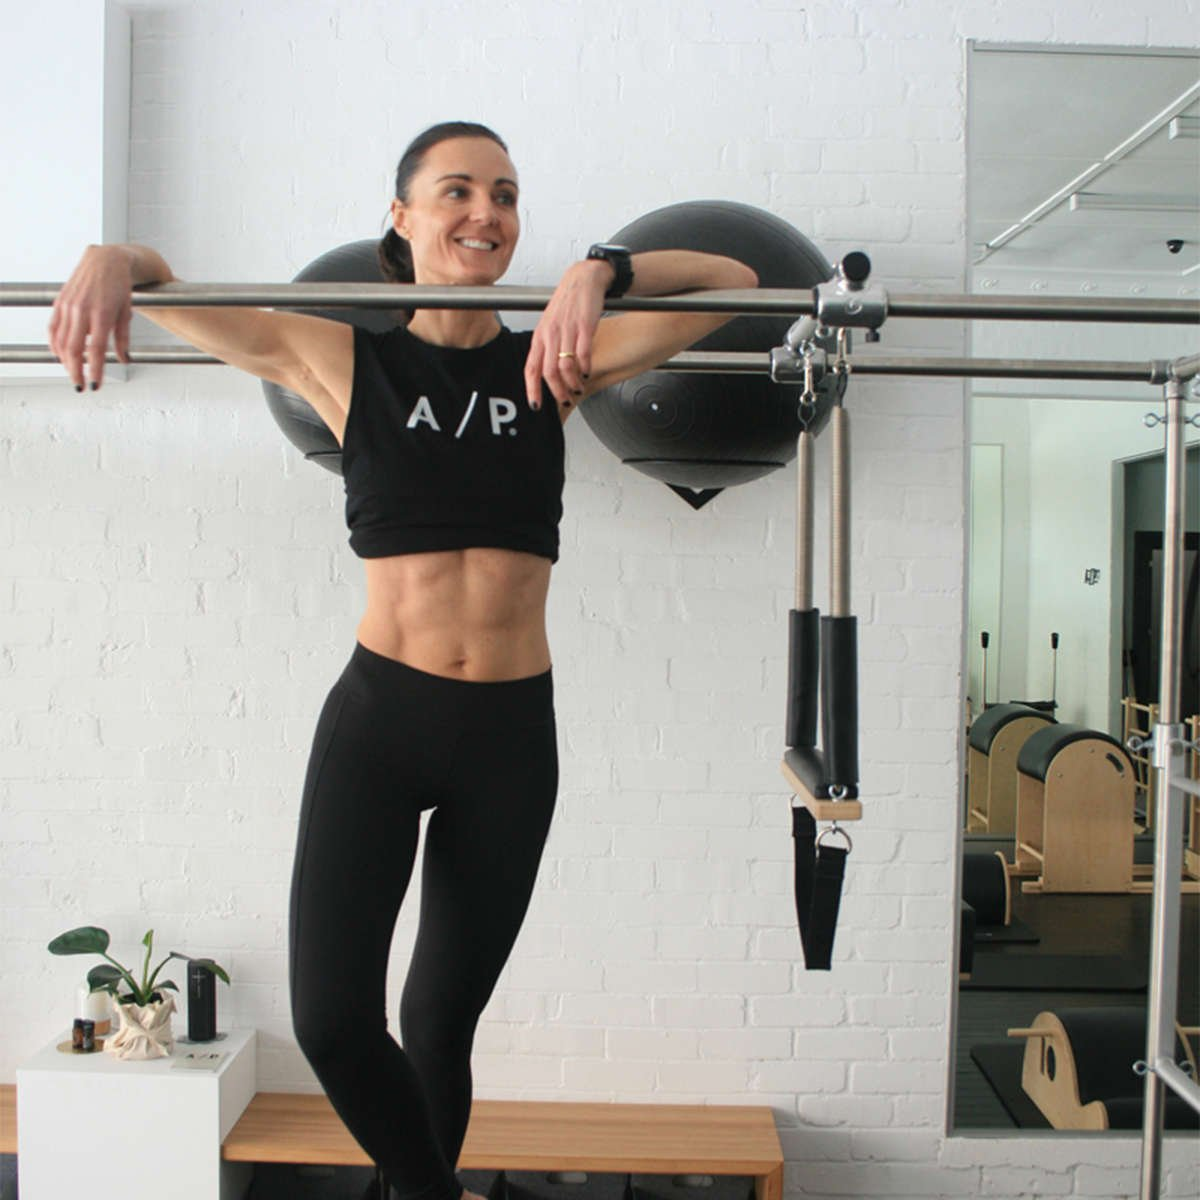 sonia wong founder of athletica pilates annandale